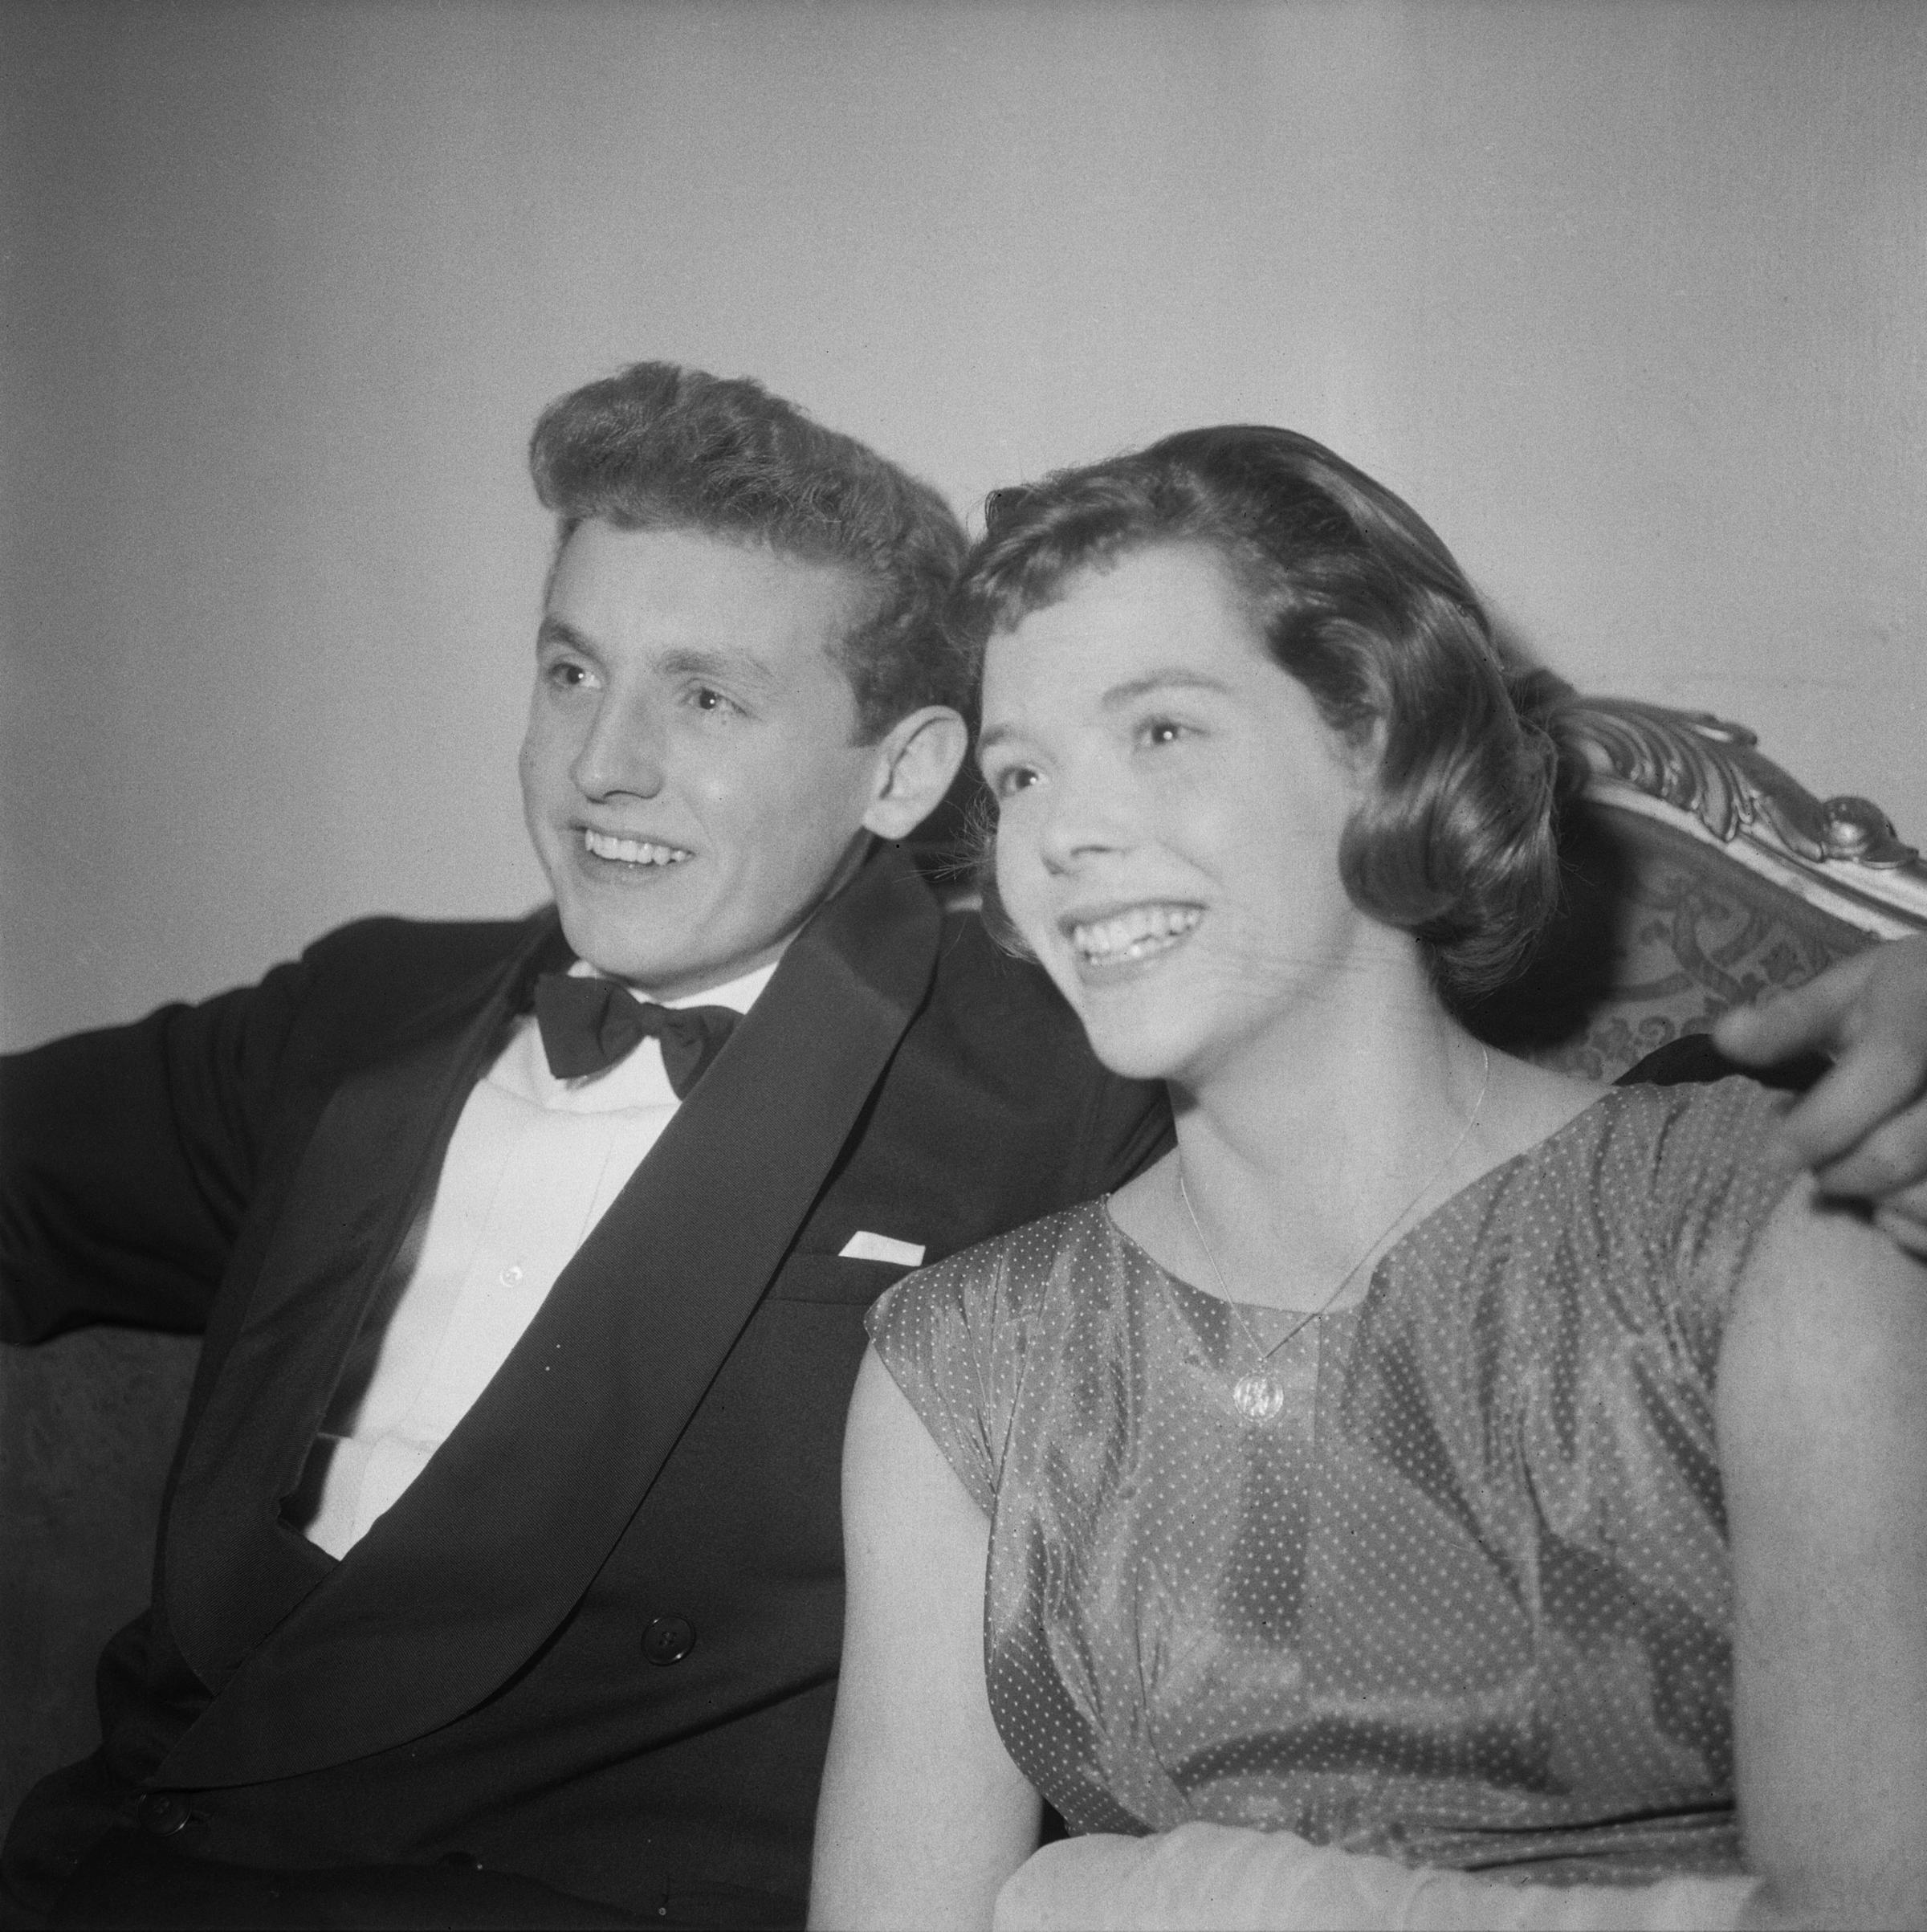 Scottish swimmer Ian Black with British Olympic swimmer Judy Grinham at the BBC Sports Personality of the Year presentations in Park Lane, London in 1958